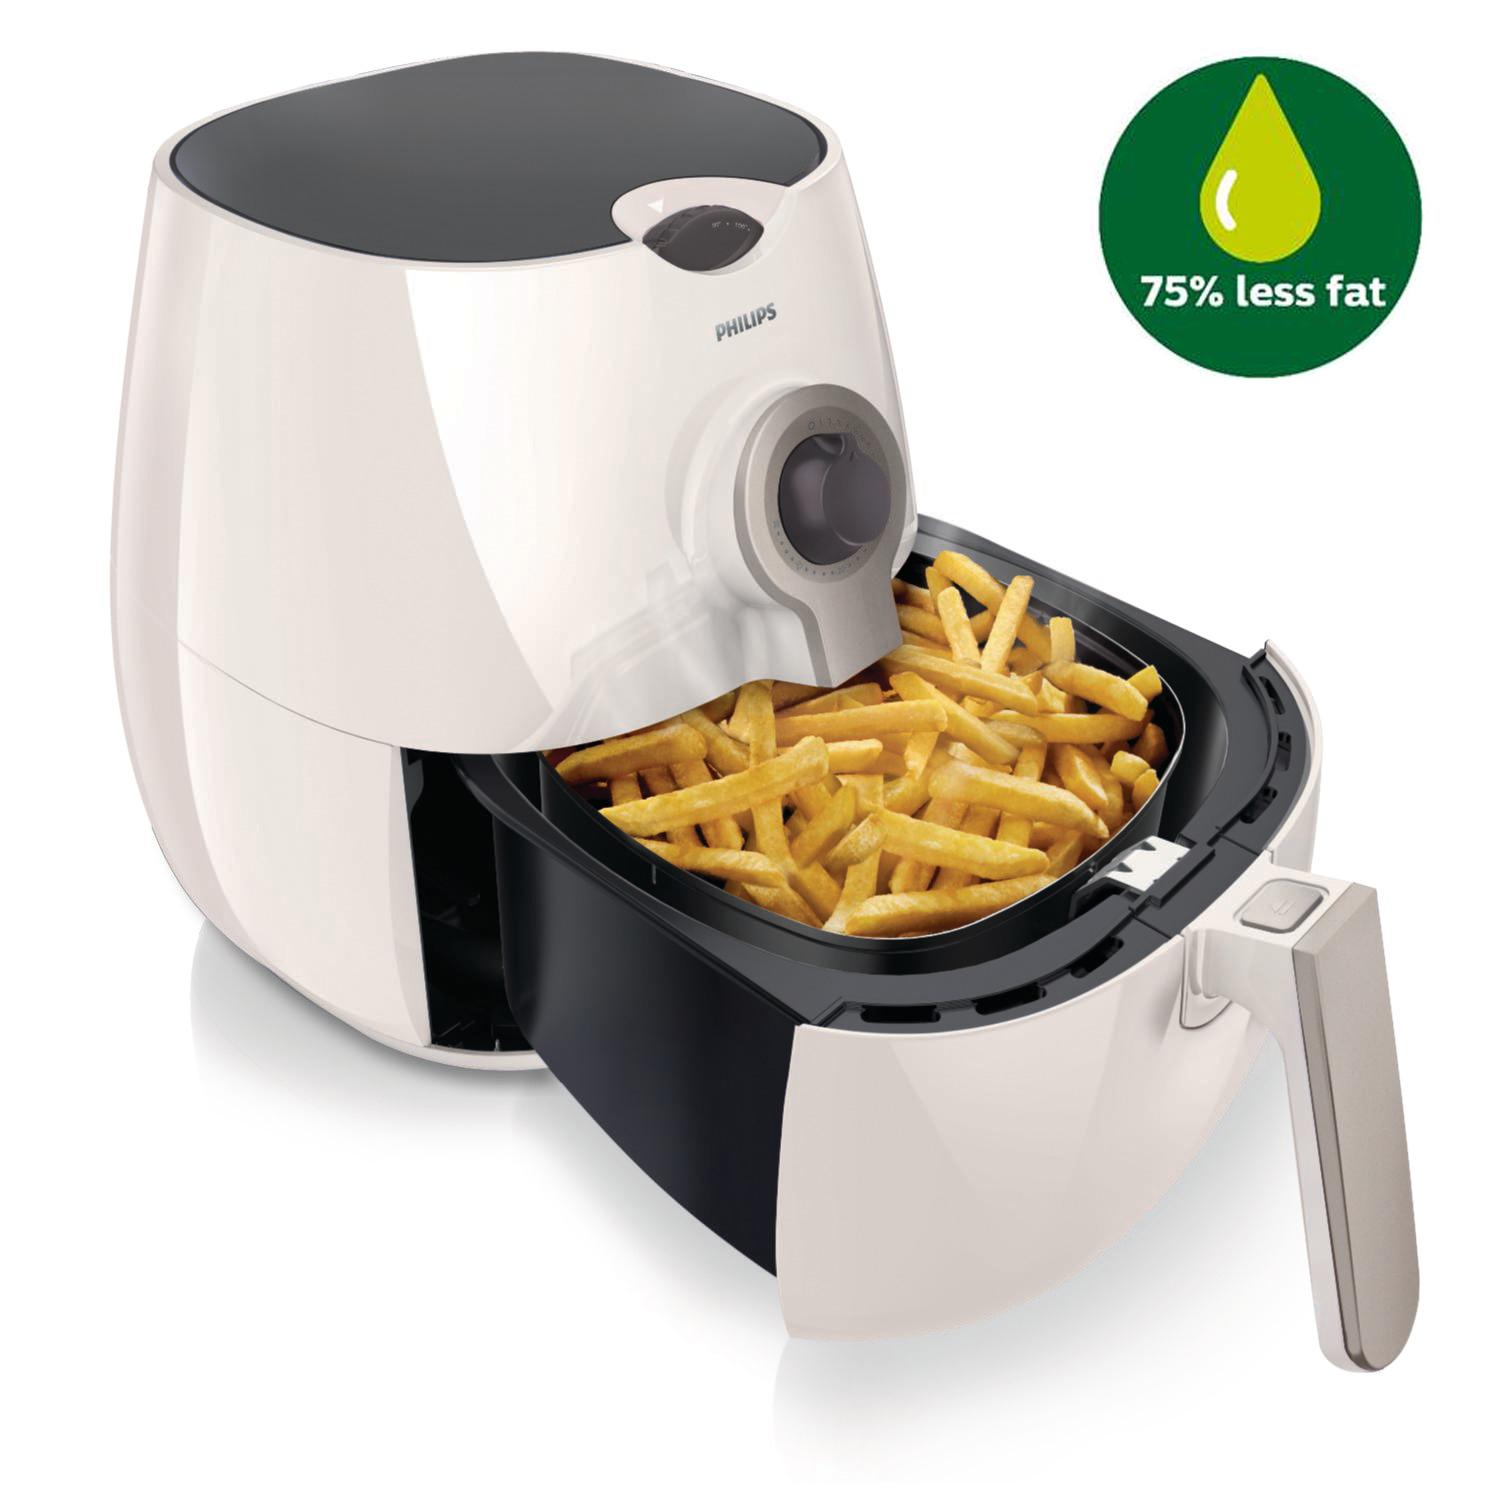 Amazon.com: Philips Airfryer, The Original Airfryer with